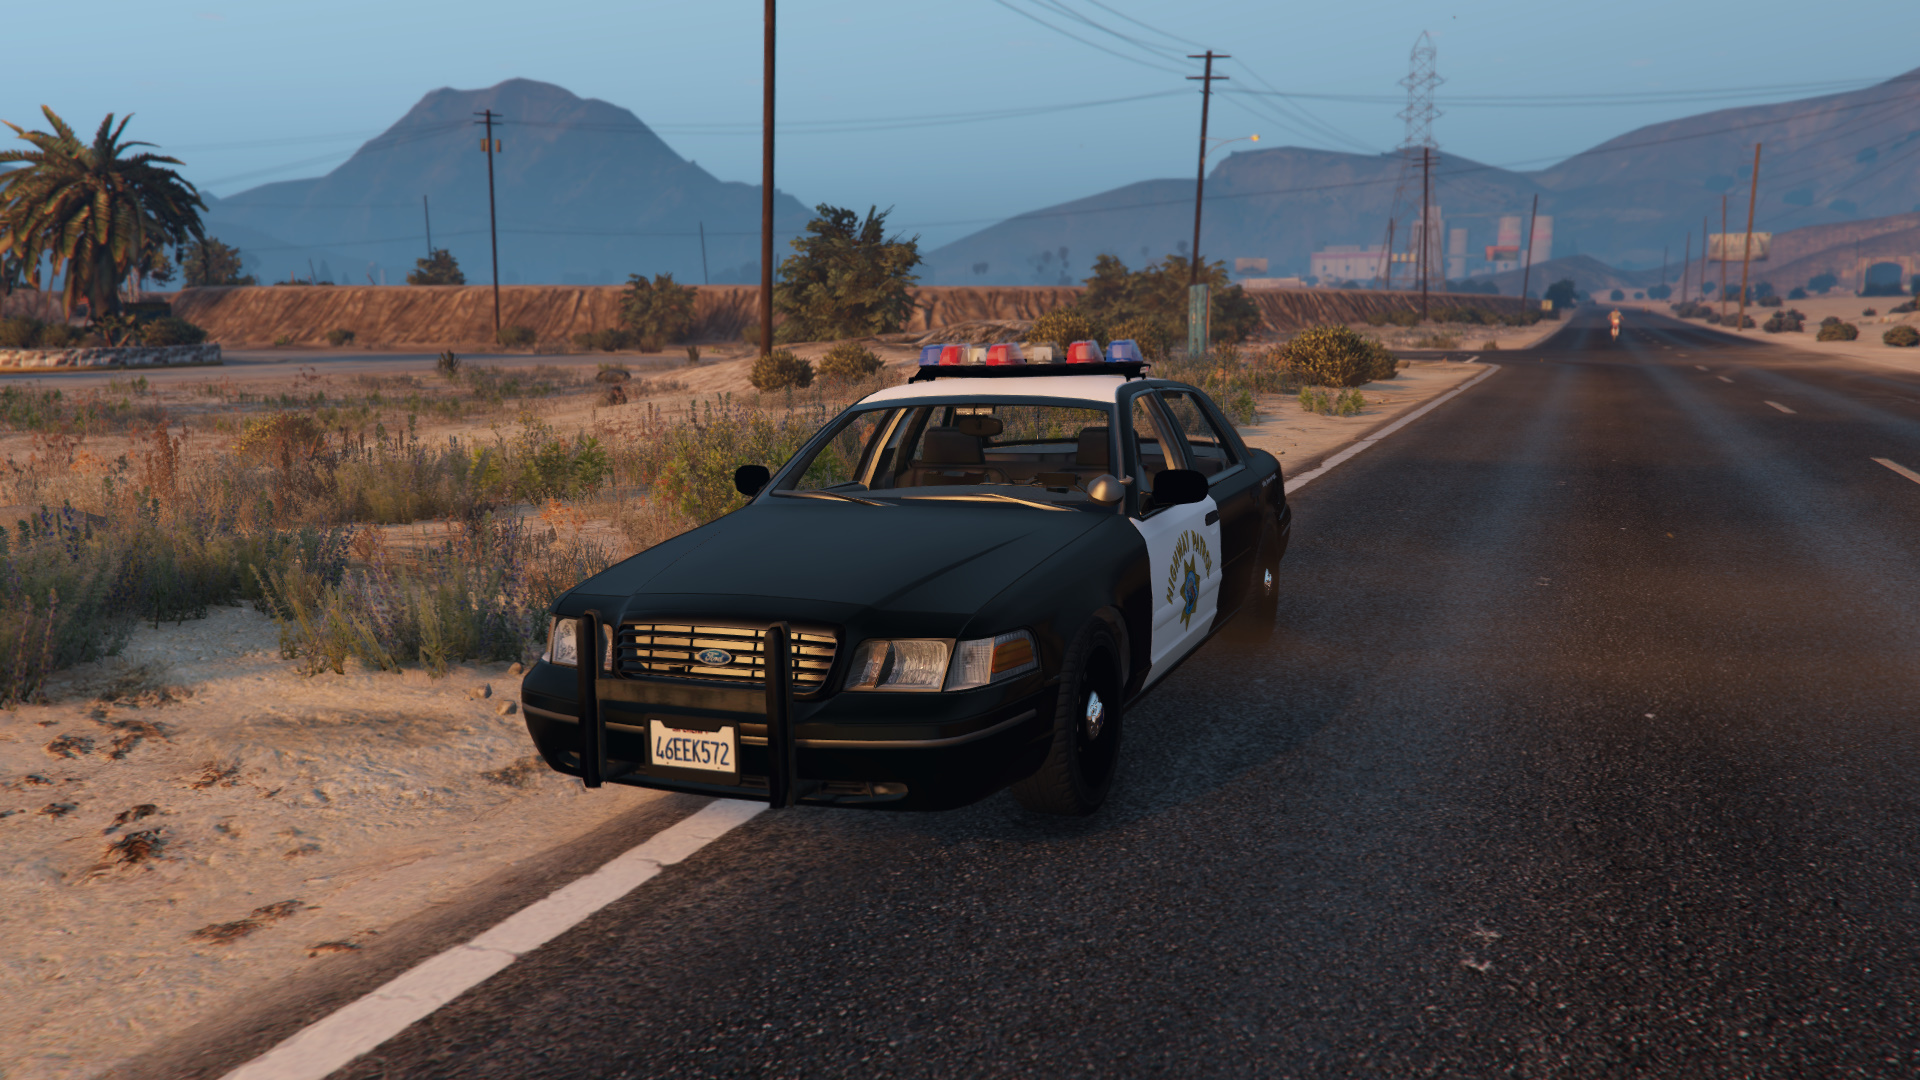 Chp cvpi with fs vector lightbar gta5 mods 0b066c gta5 2015 09 13 10 21 47 954 aloadofball Choice Image